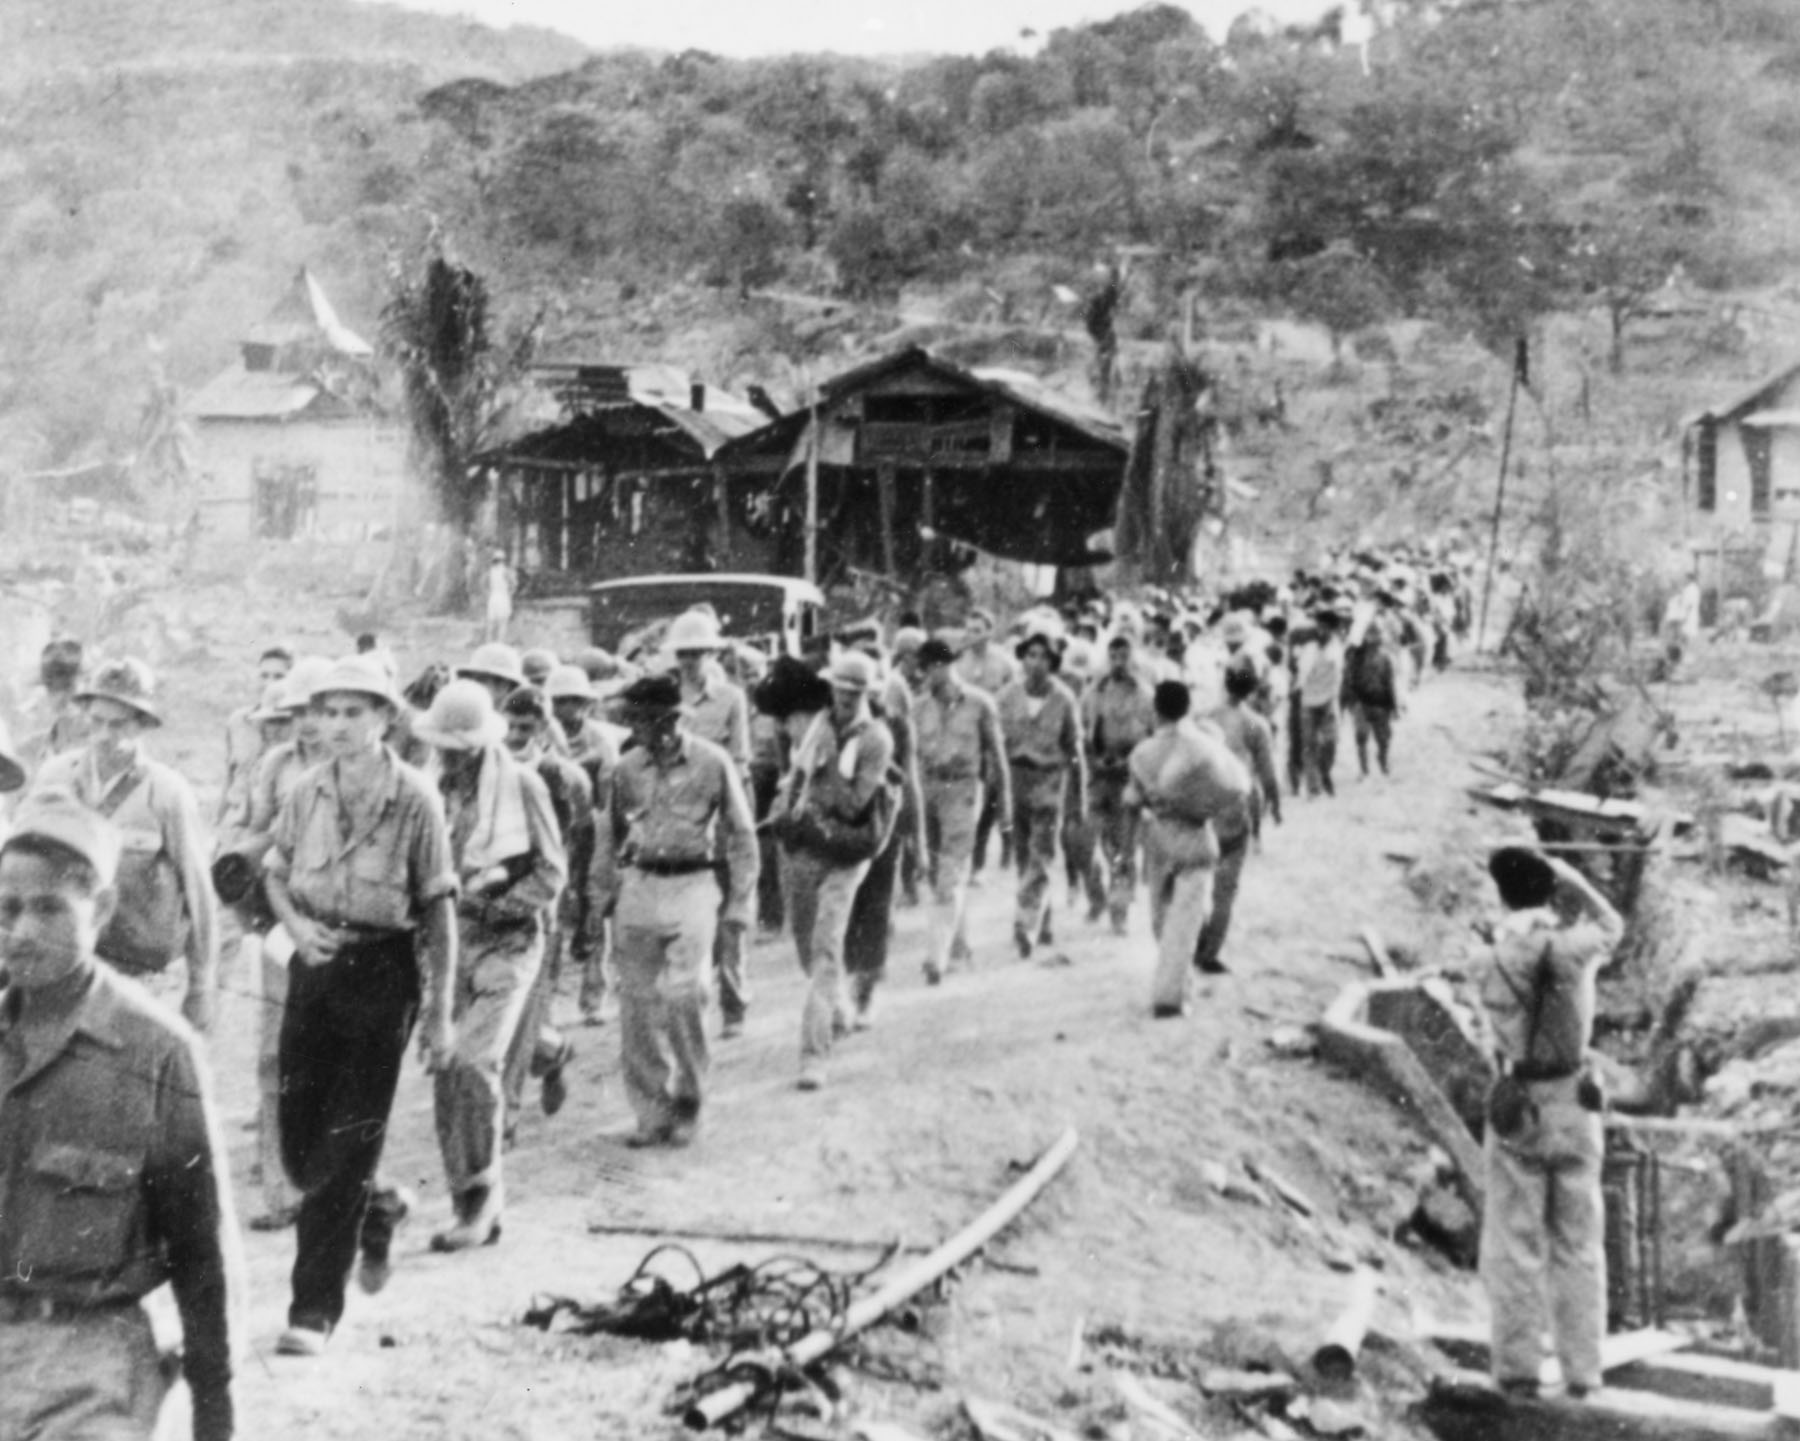 The Bataan Death March. Photo courtesy of the National Archives